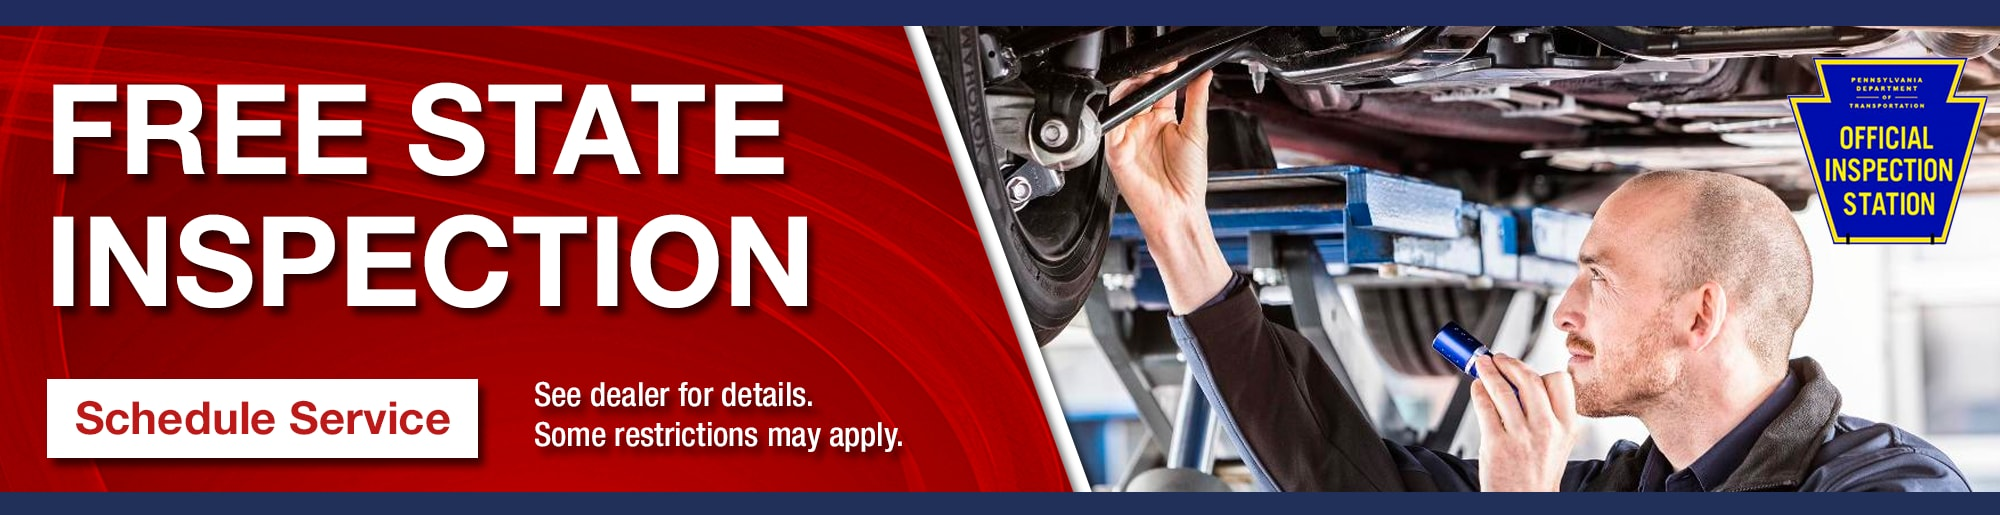 Schedule Free Pa State Inspection In Mechanicsburg Mifflintown